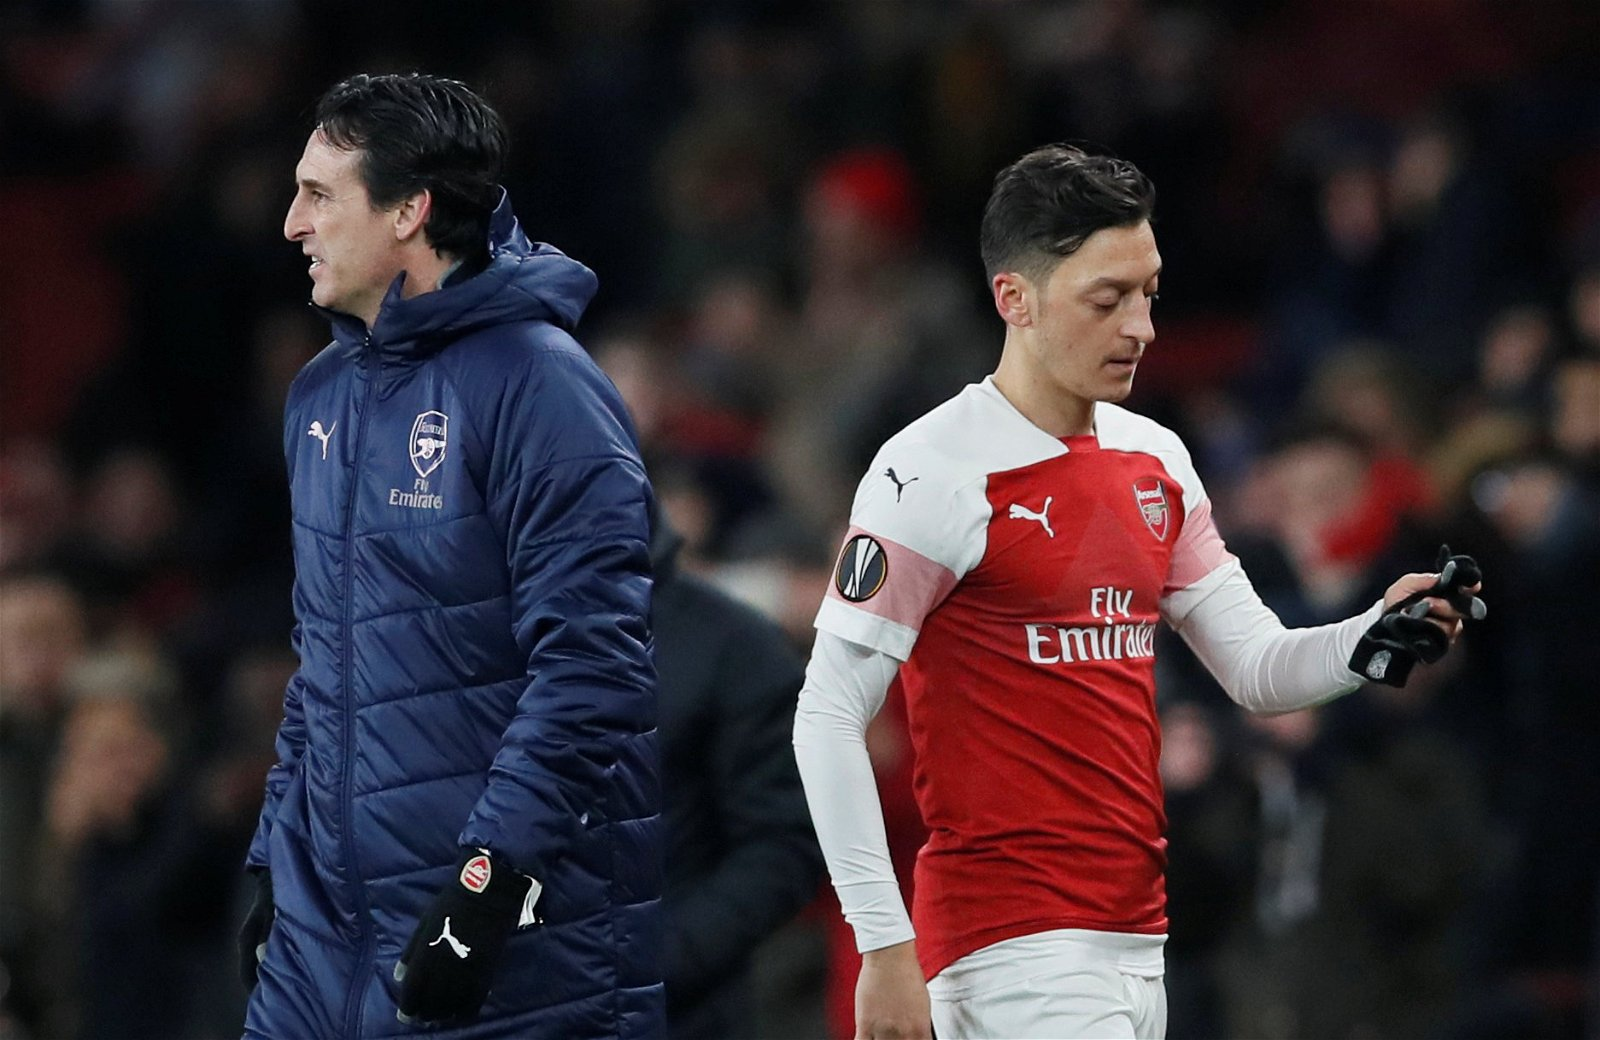 Manager Unai Emery and Mesut Ozil Arsenal vs Qarabag - The bigger picture: a long road still lays ahead of Arsenal and Unai Emery